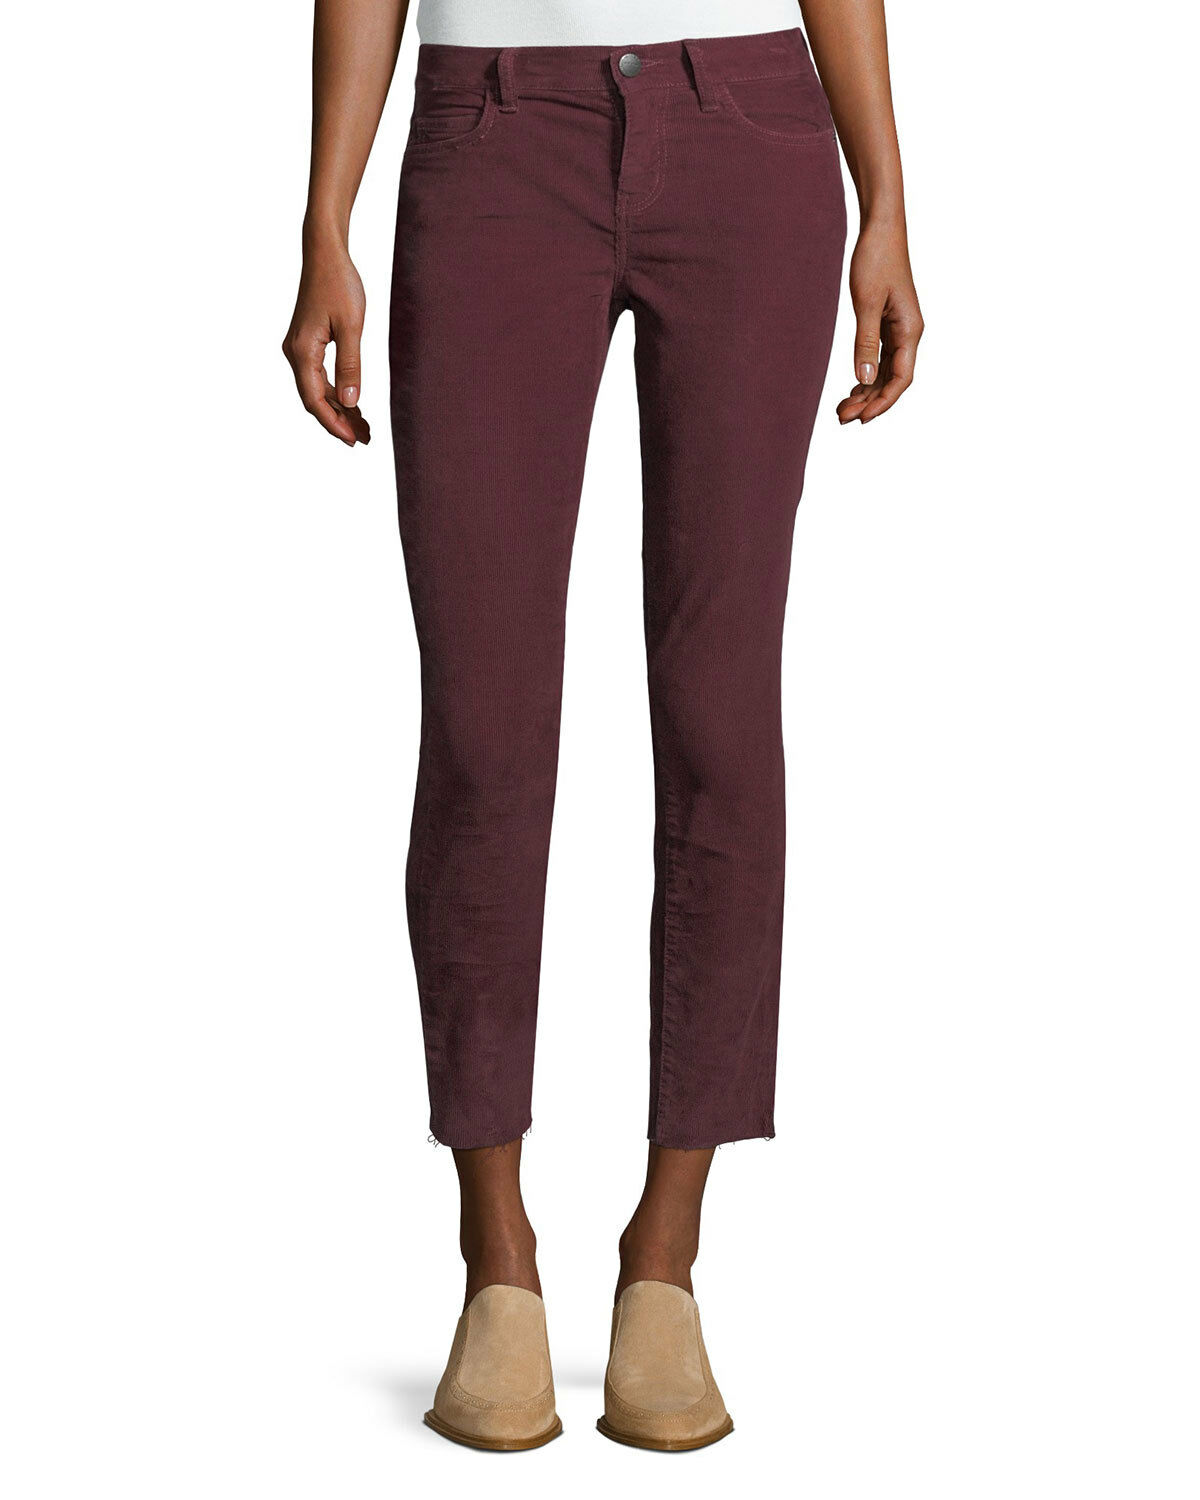 Current Elliot Burgundy Corduroy Skinny Ankle Jeans 'The Stiletto' Size 25